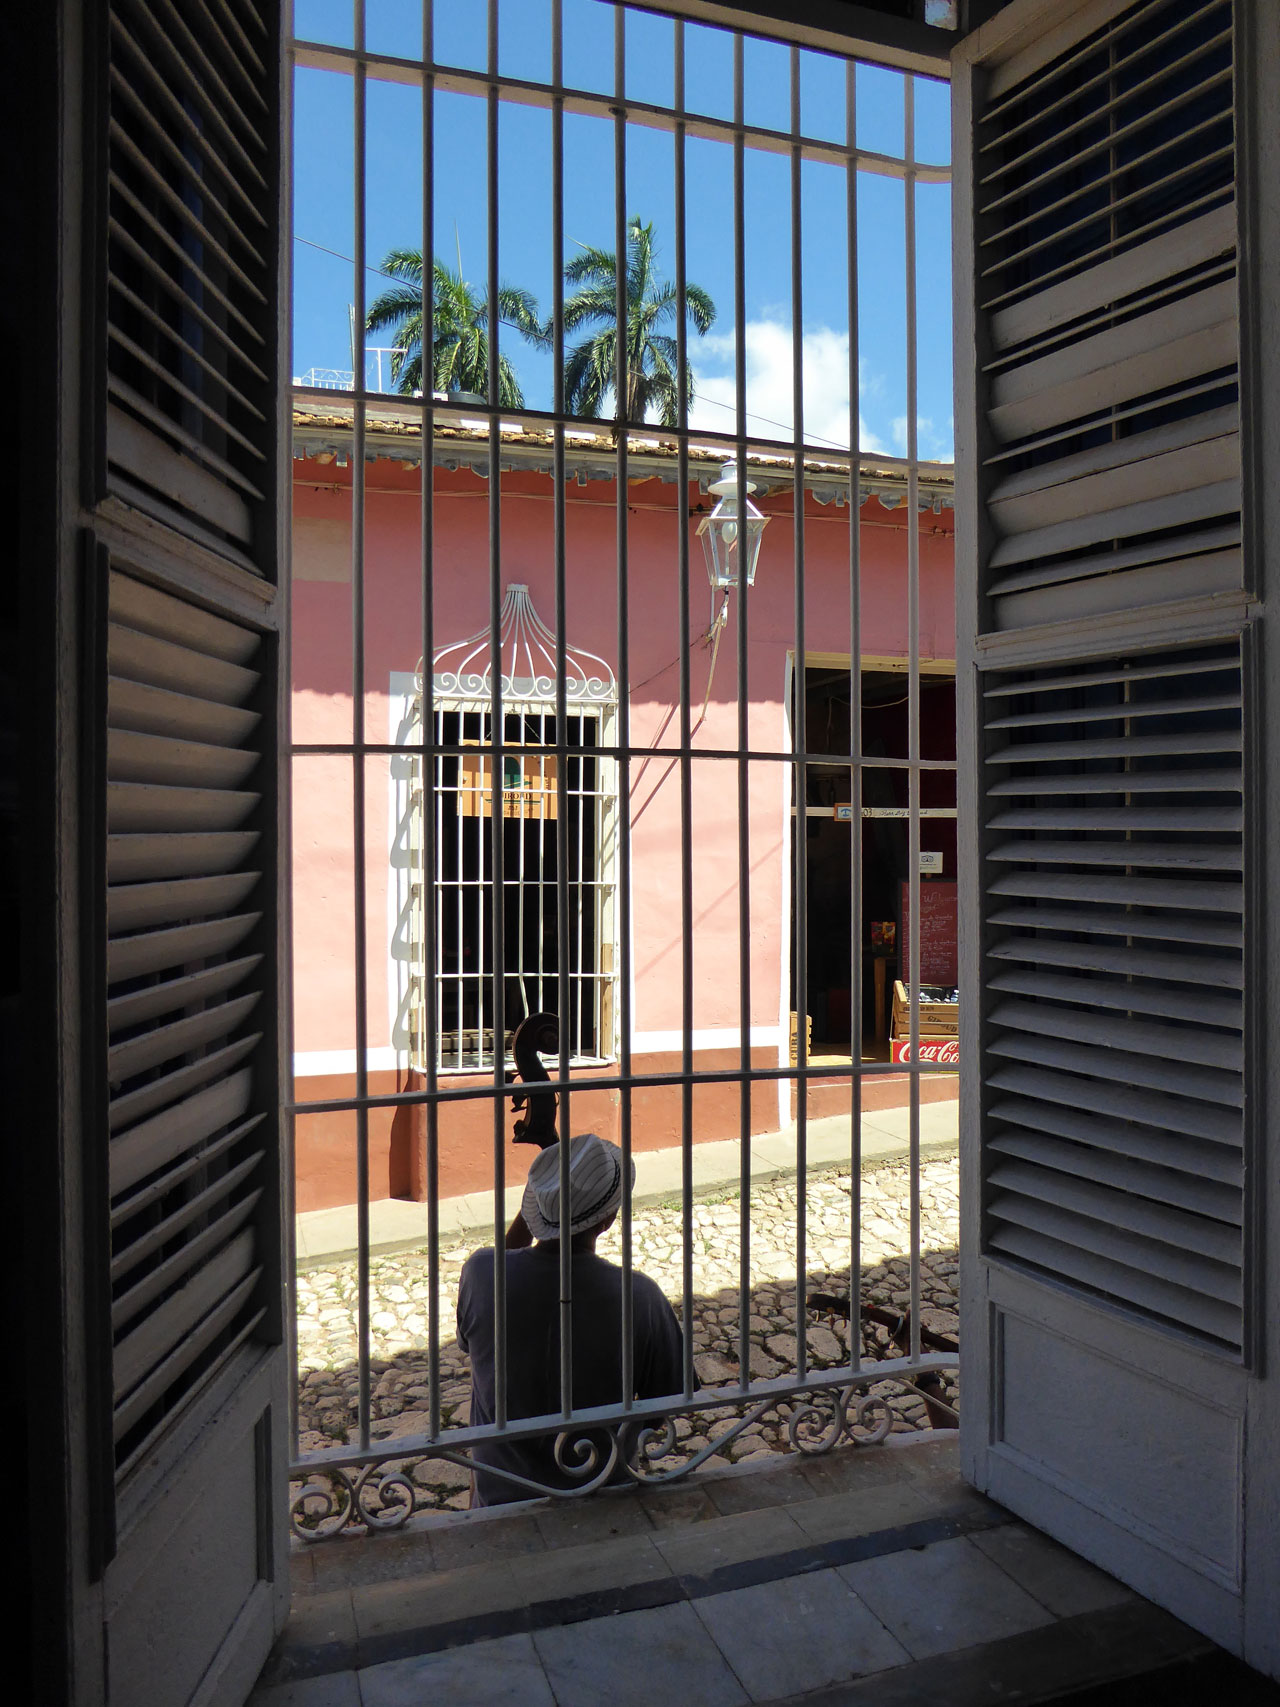 Musician viewed through a cage window in Trinidad, Cuba